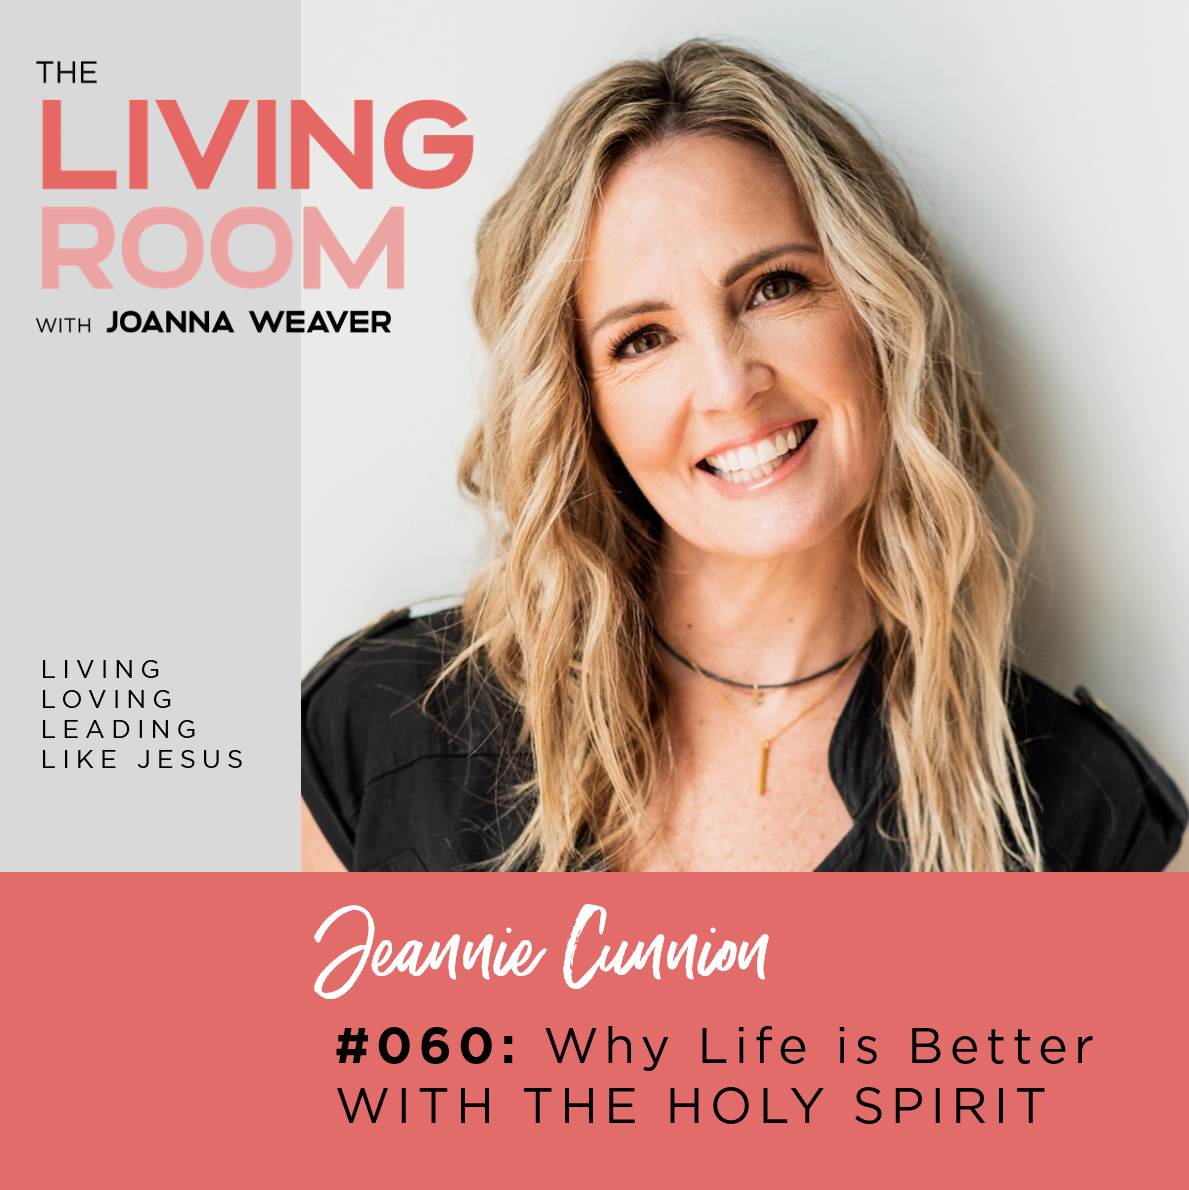 TLR 060 = Why Life is Better with the Holy Spirit - Jeannie Cunnion